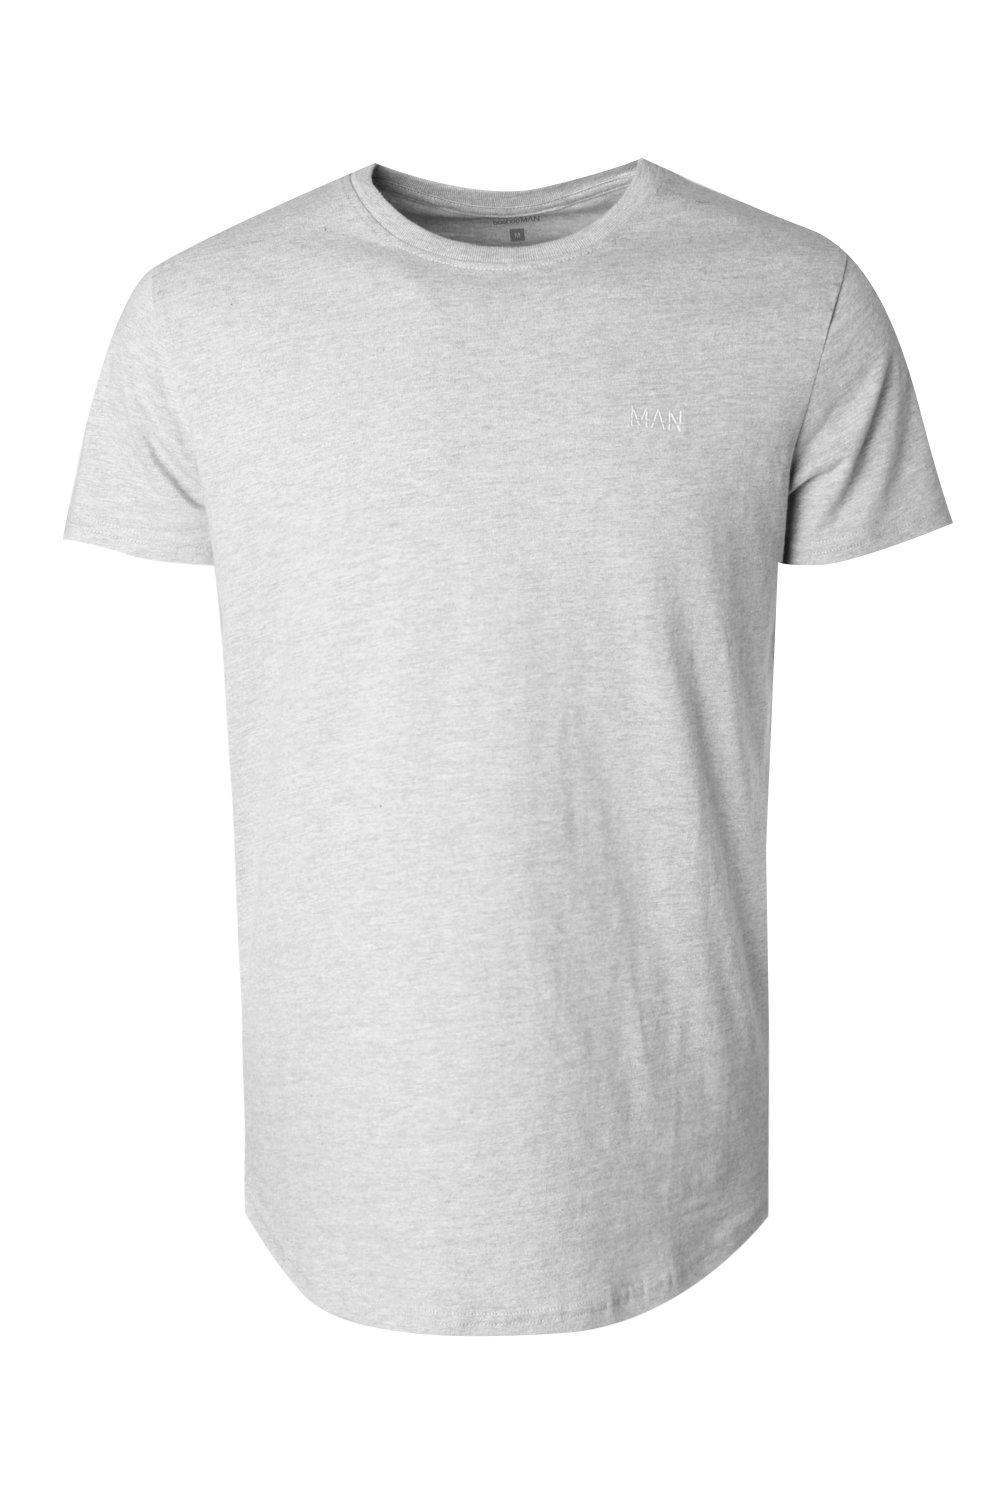 boohooMAN grey Short Sleeve Active Gym T-Shirt